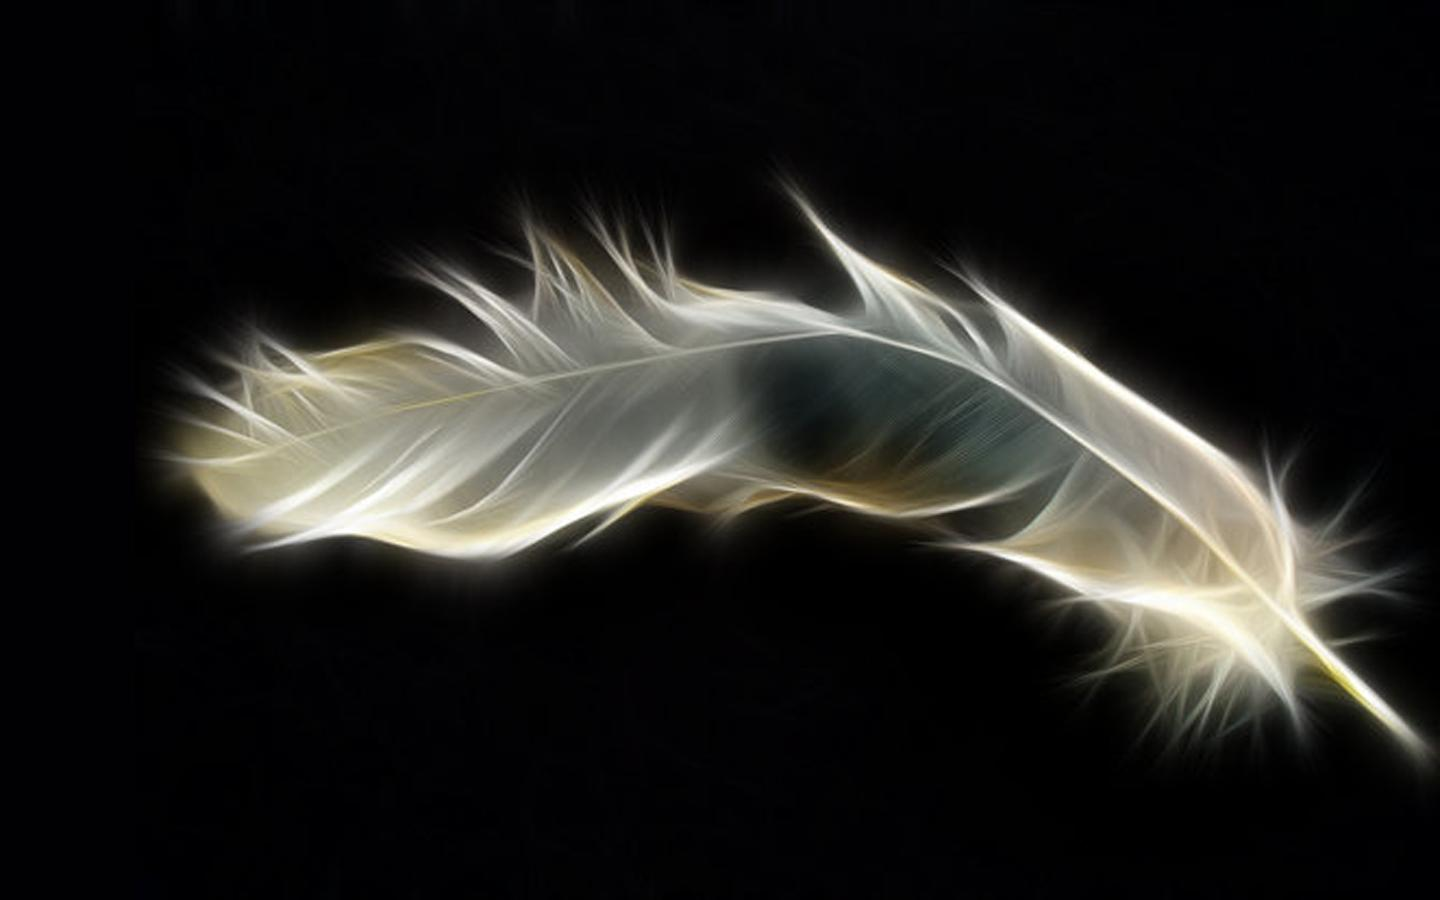 Abstract Feather Wallpaper